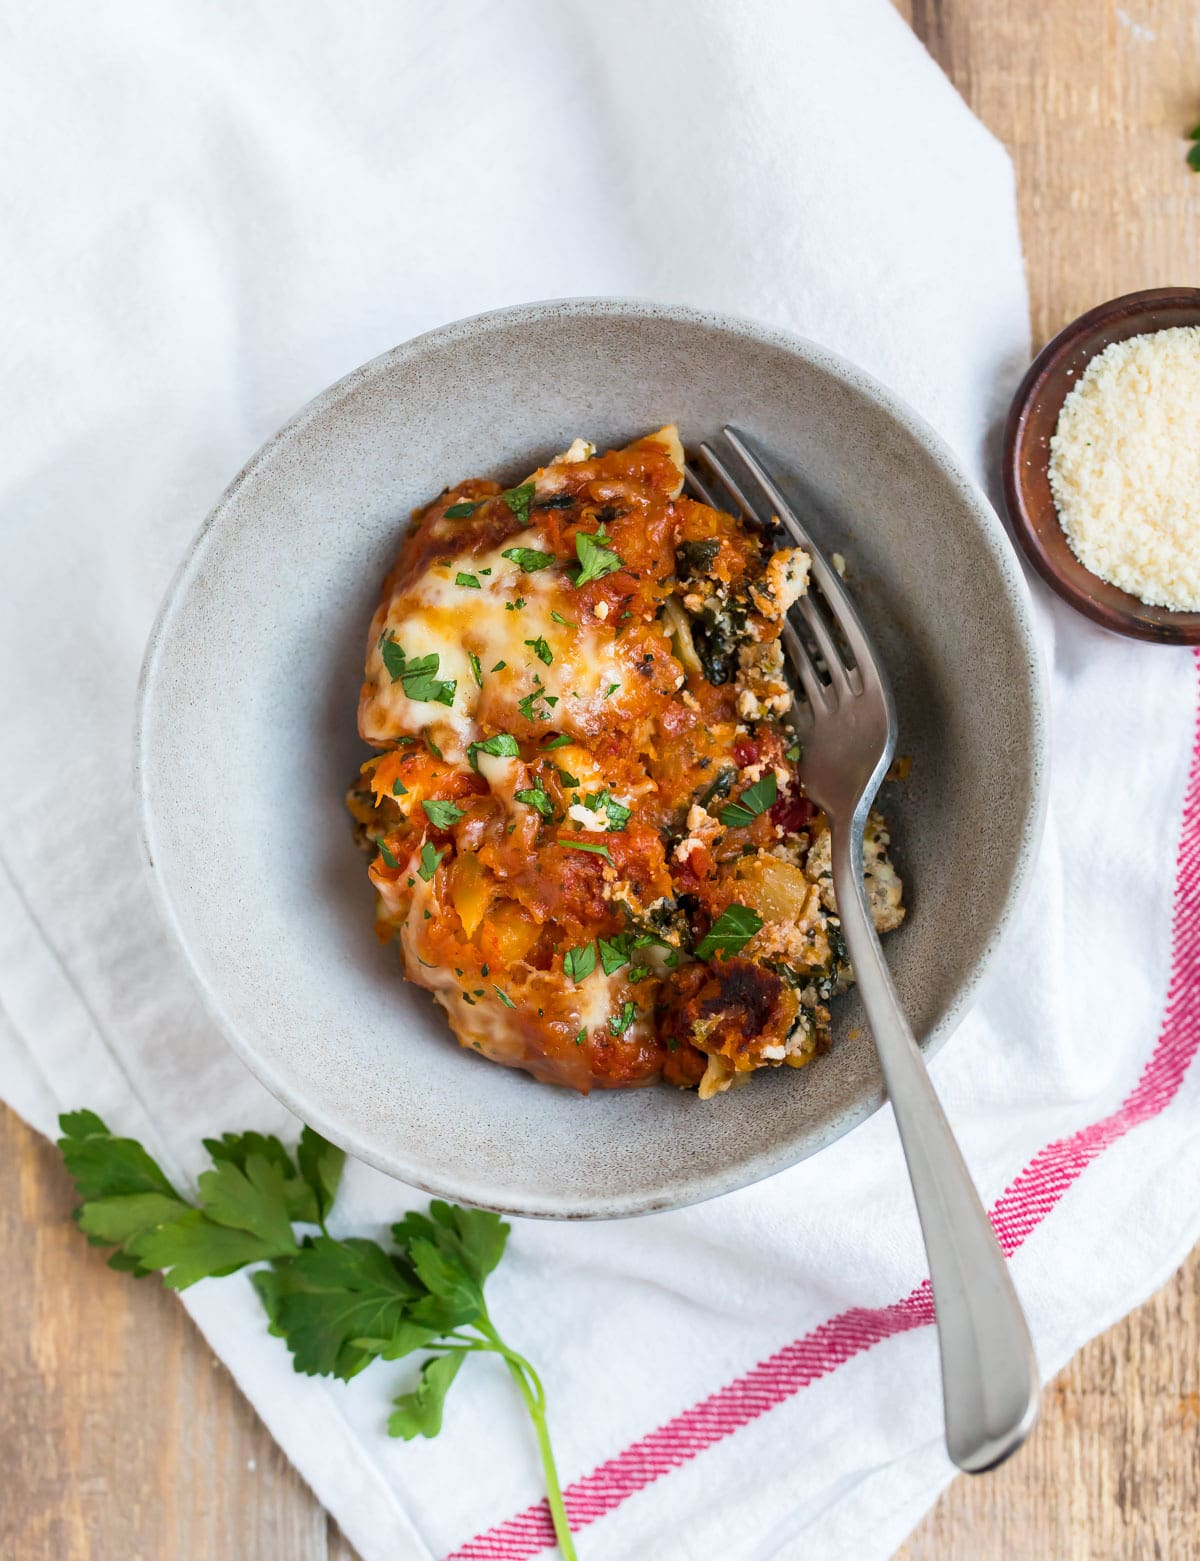 Skillet Lasagna with Basil, Italian Sausage, and Butternut Squash. This healthy, one-pan dinner is packed with whole grains and hidden veggies.